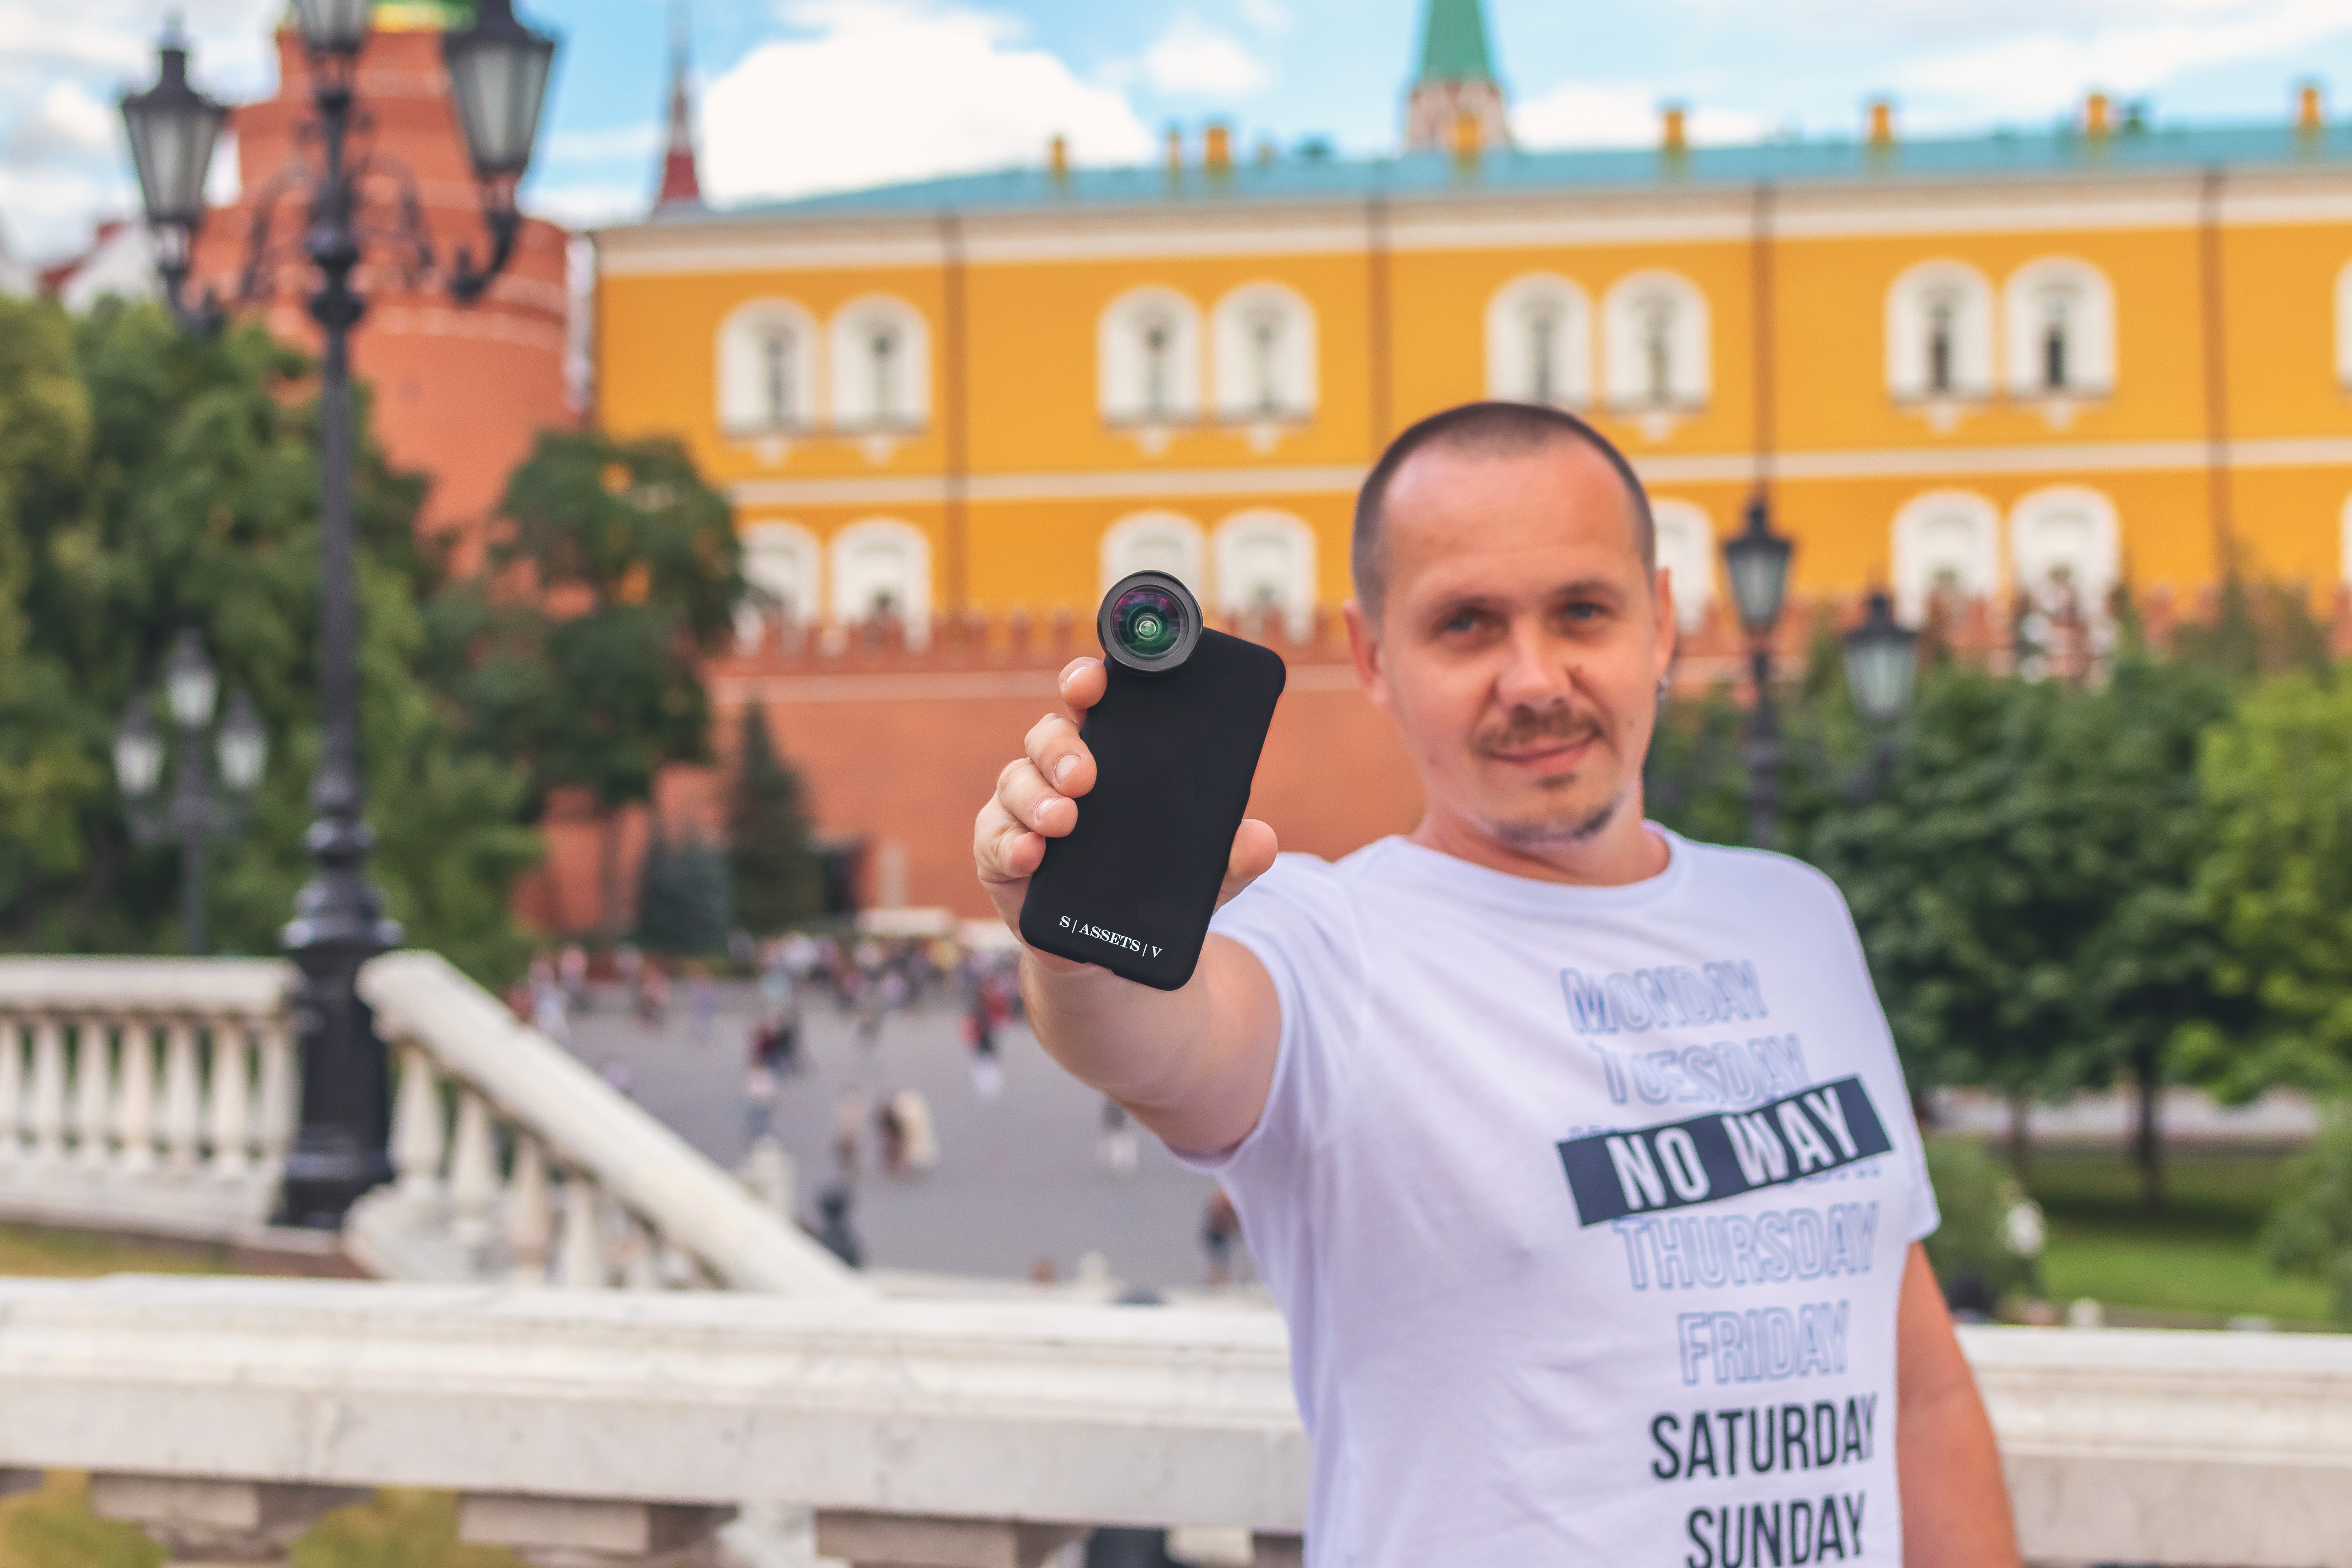 Man In White Crew Neck T-shirt Holding Phone With Lens